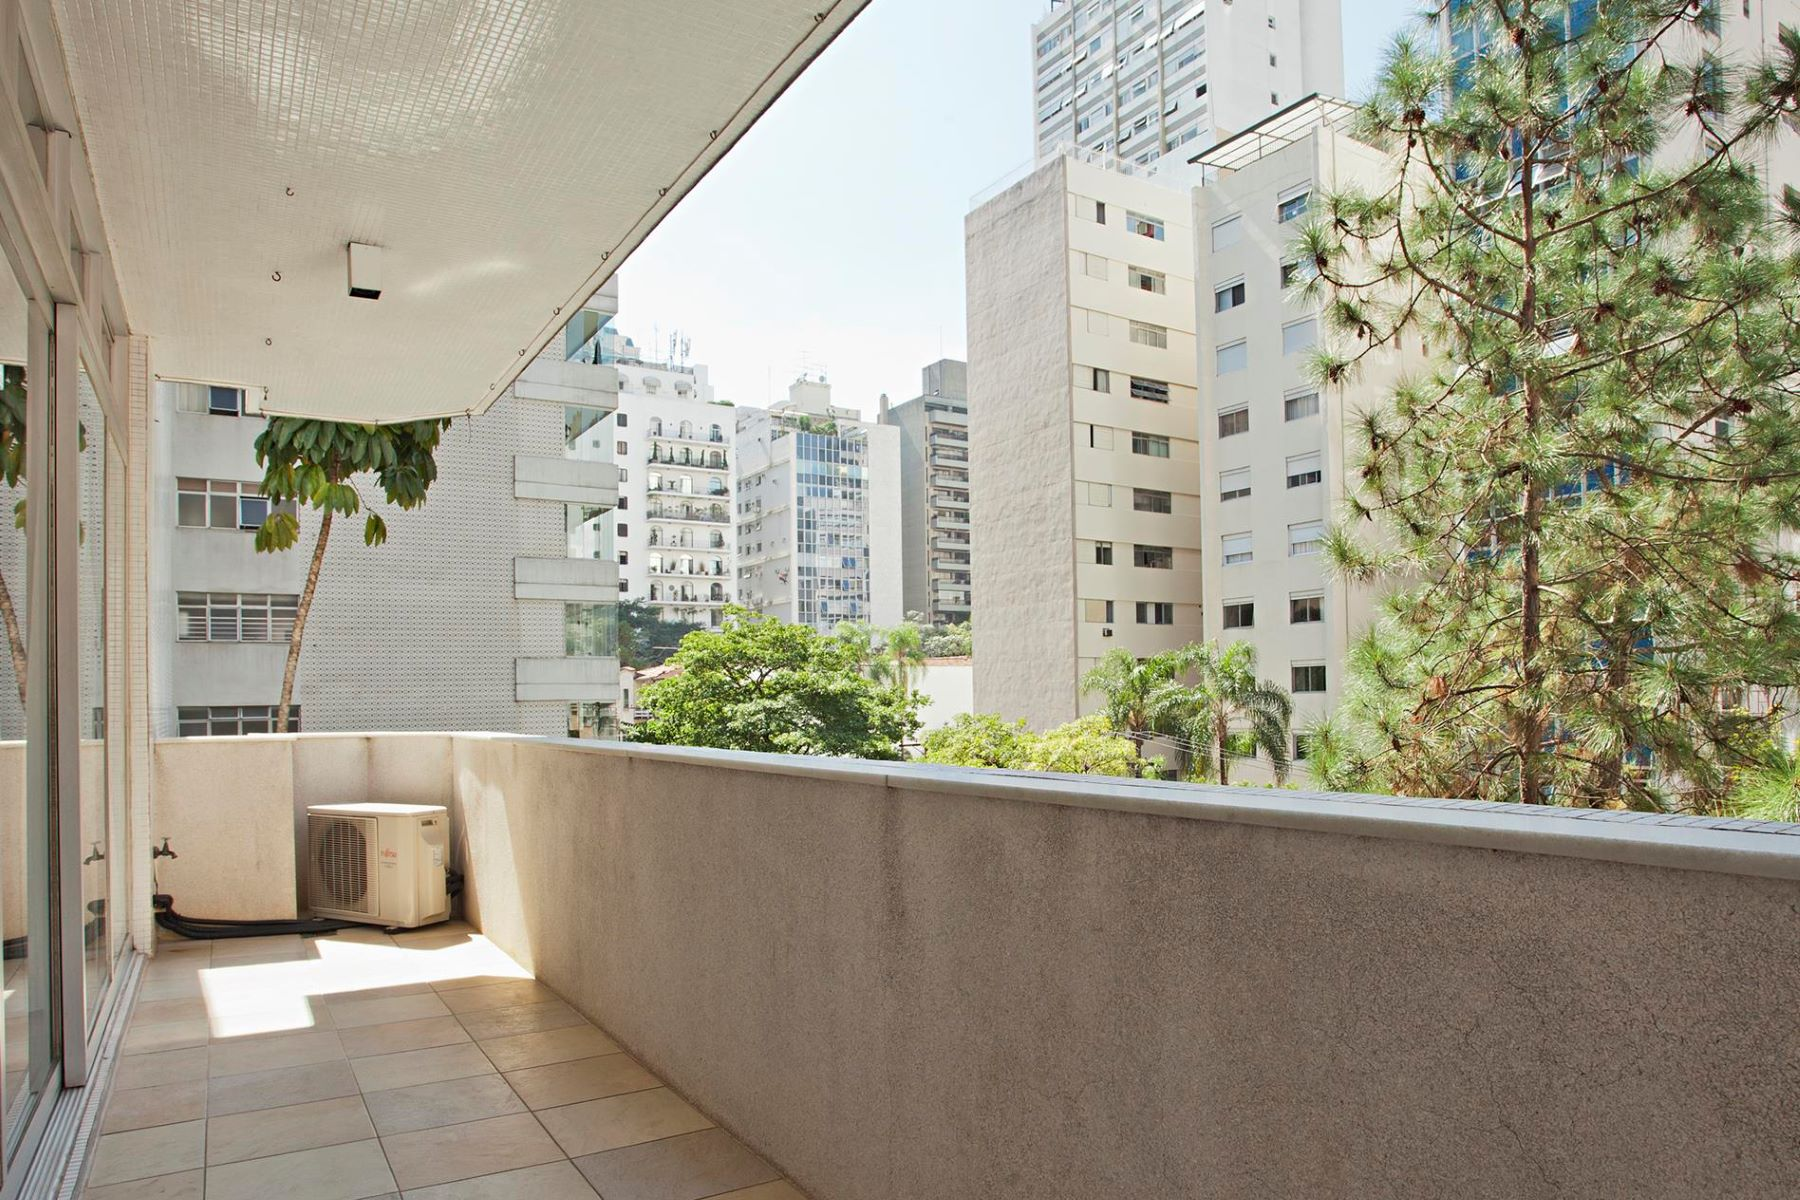 一戸建て のために 売買 アット Wide Living Area with a Terrace Sao Paulo, Sao Paulo 01409-001 Brazil